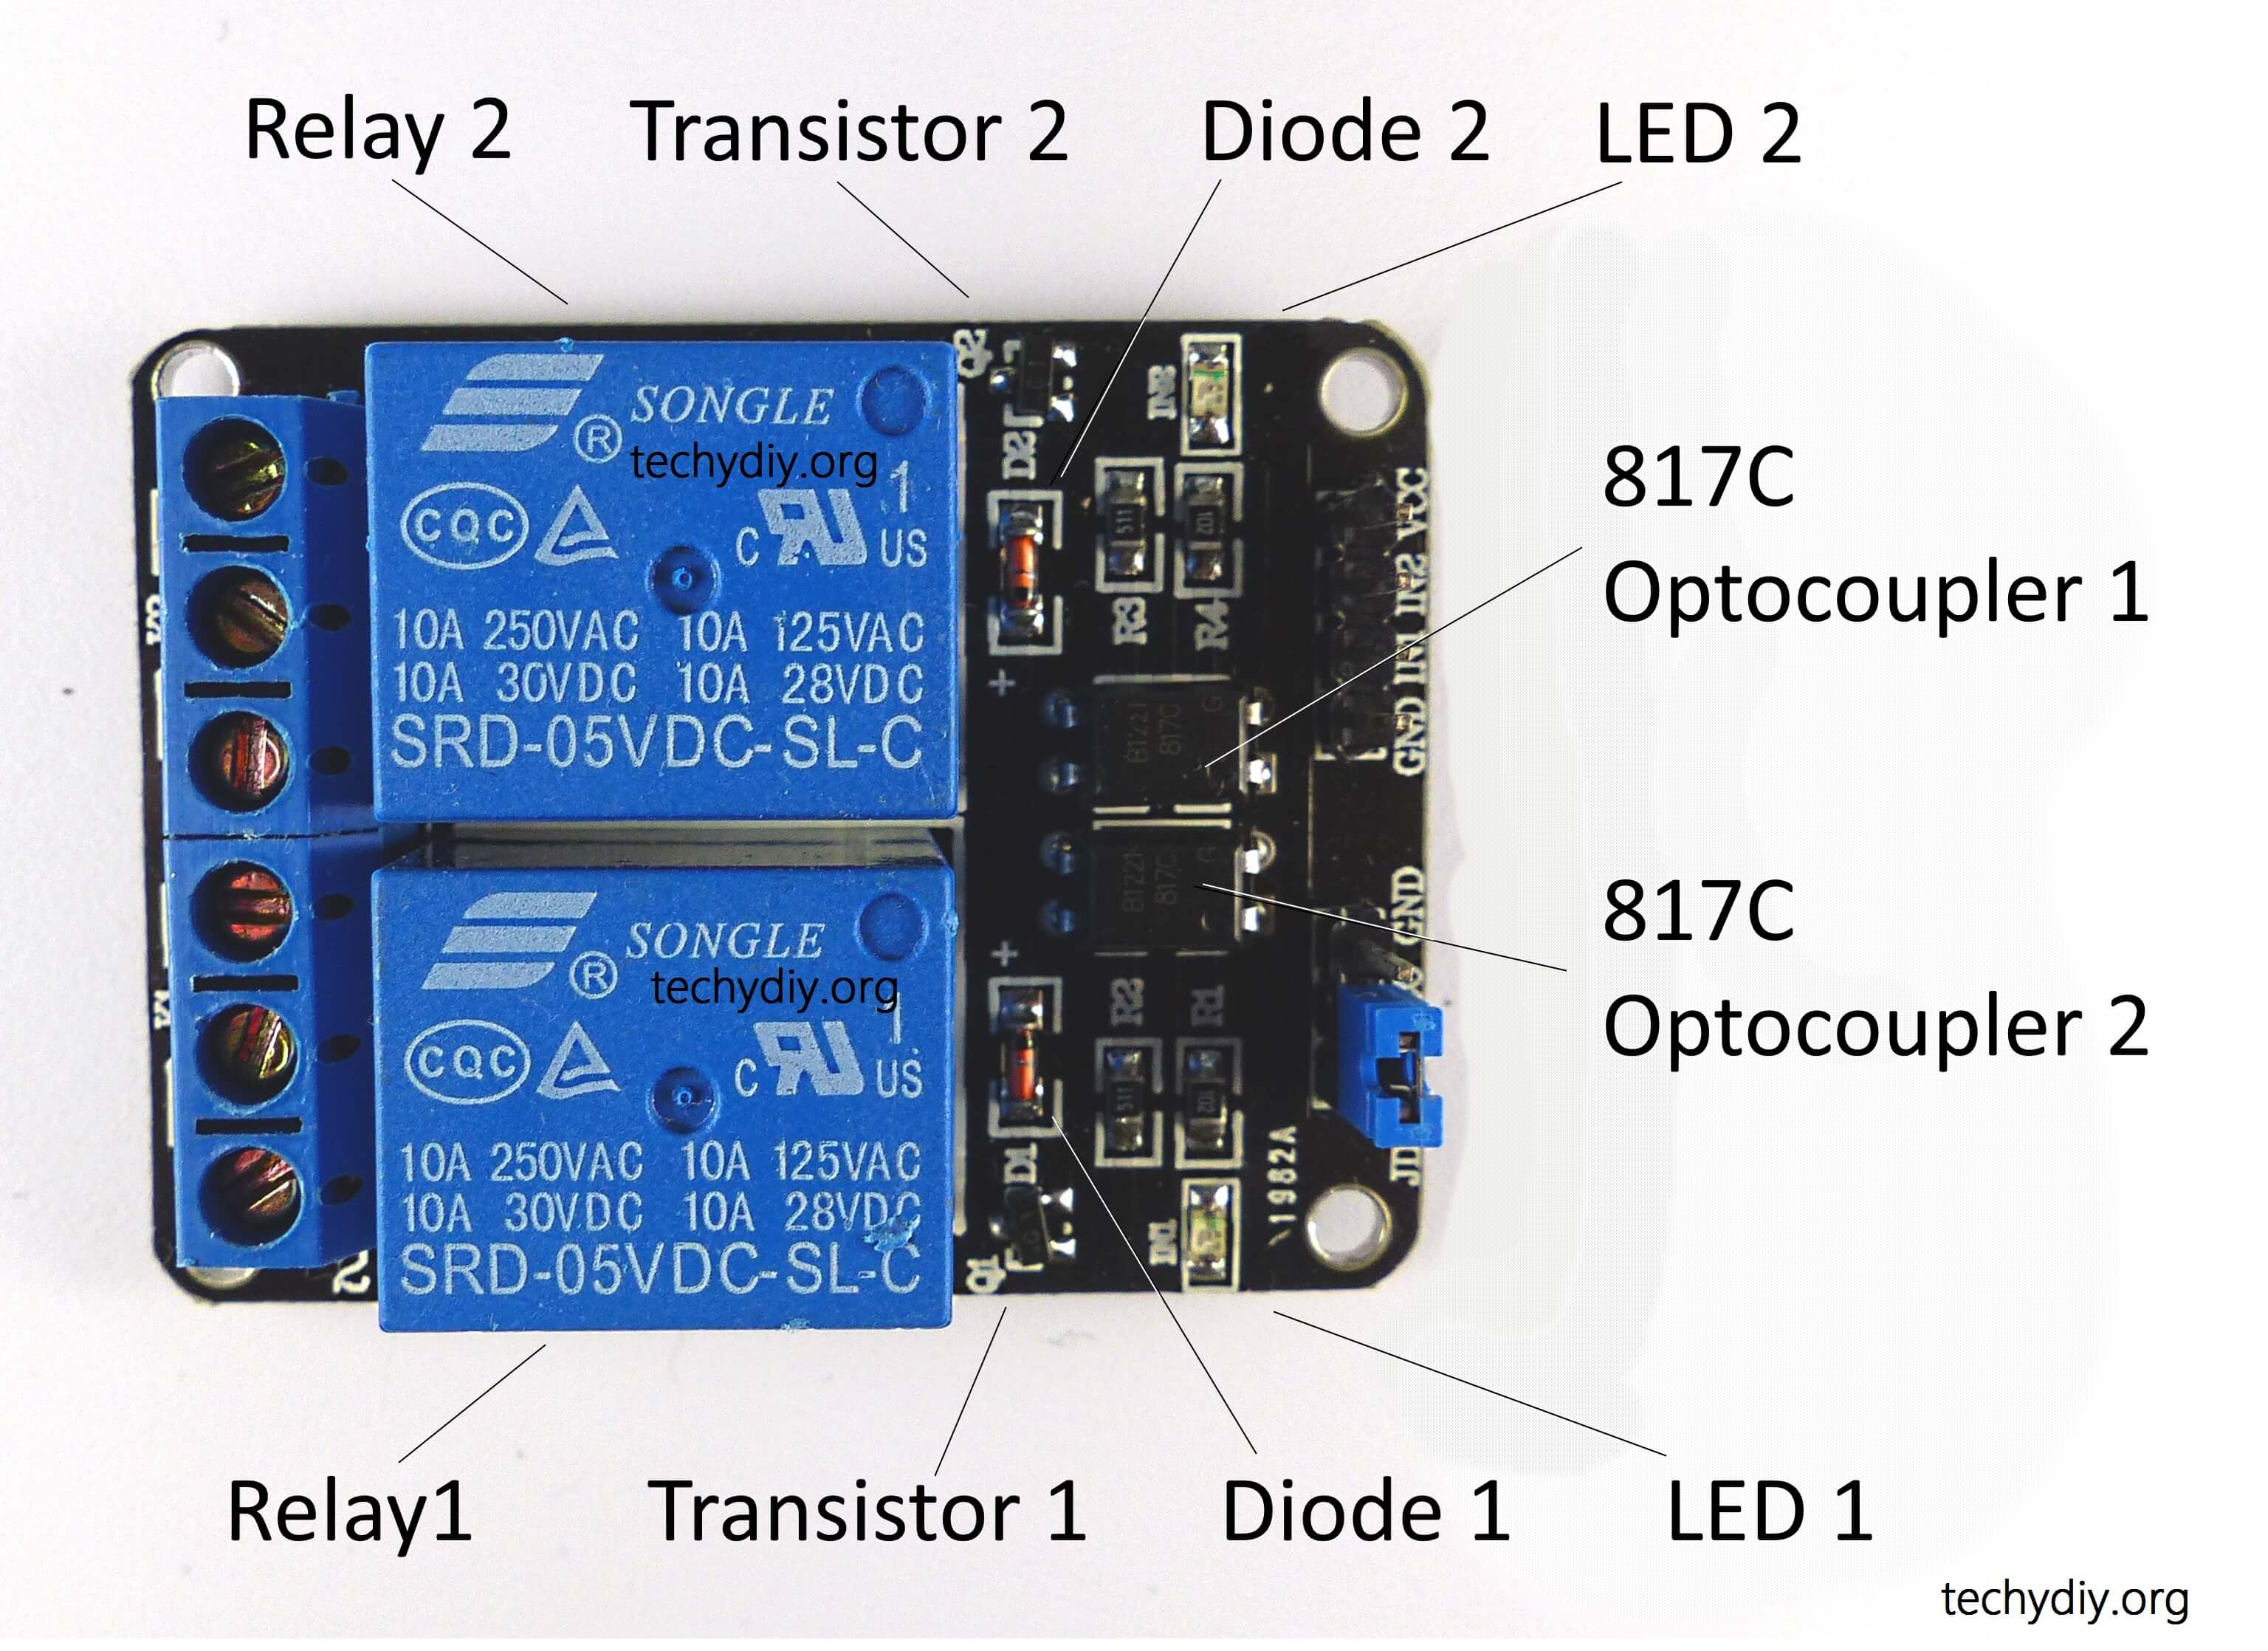 Relay wiring up the srd-05vdc-sl-c to an arduino or arduino-like.